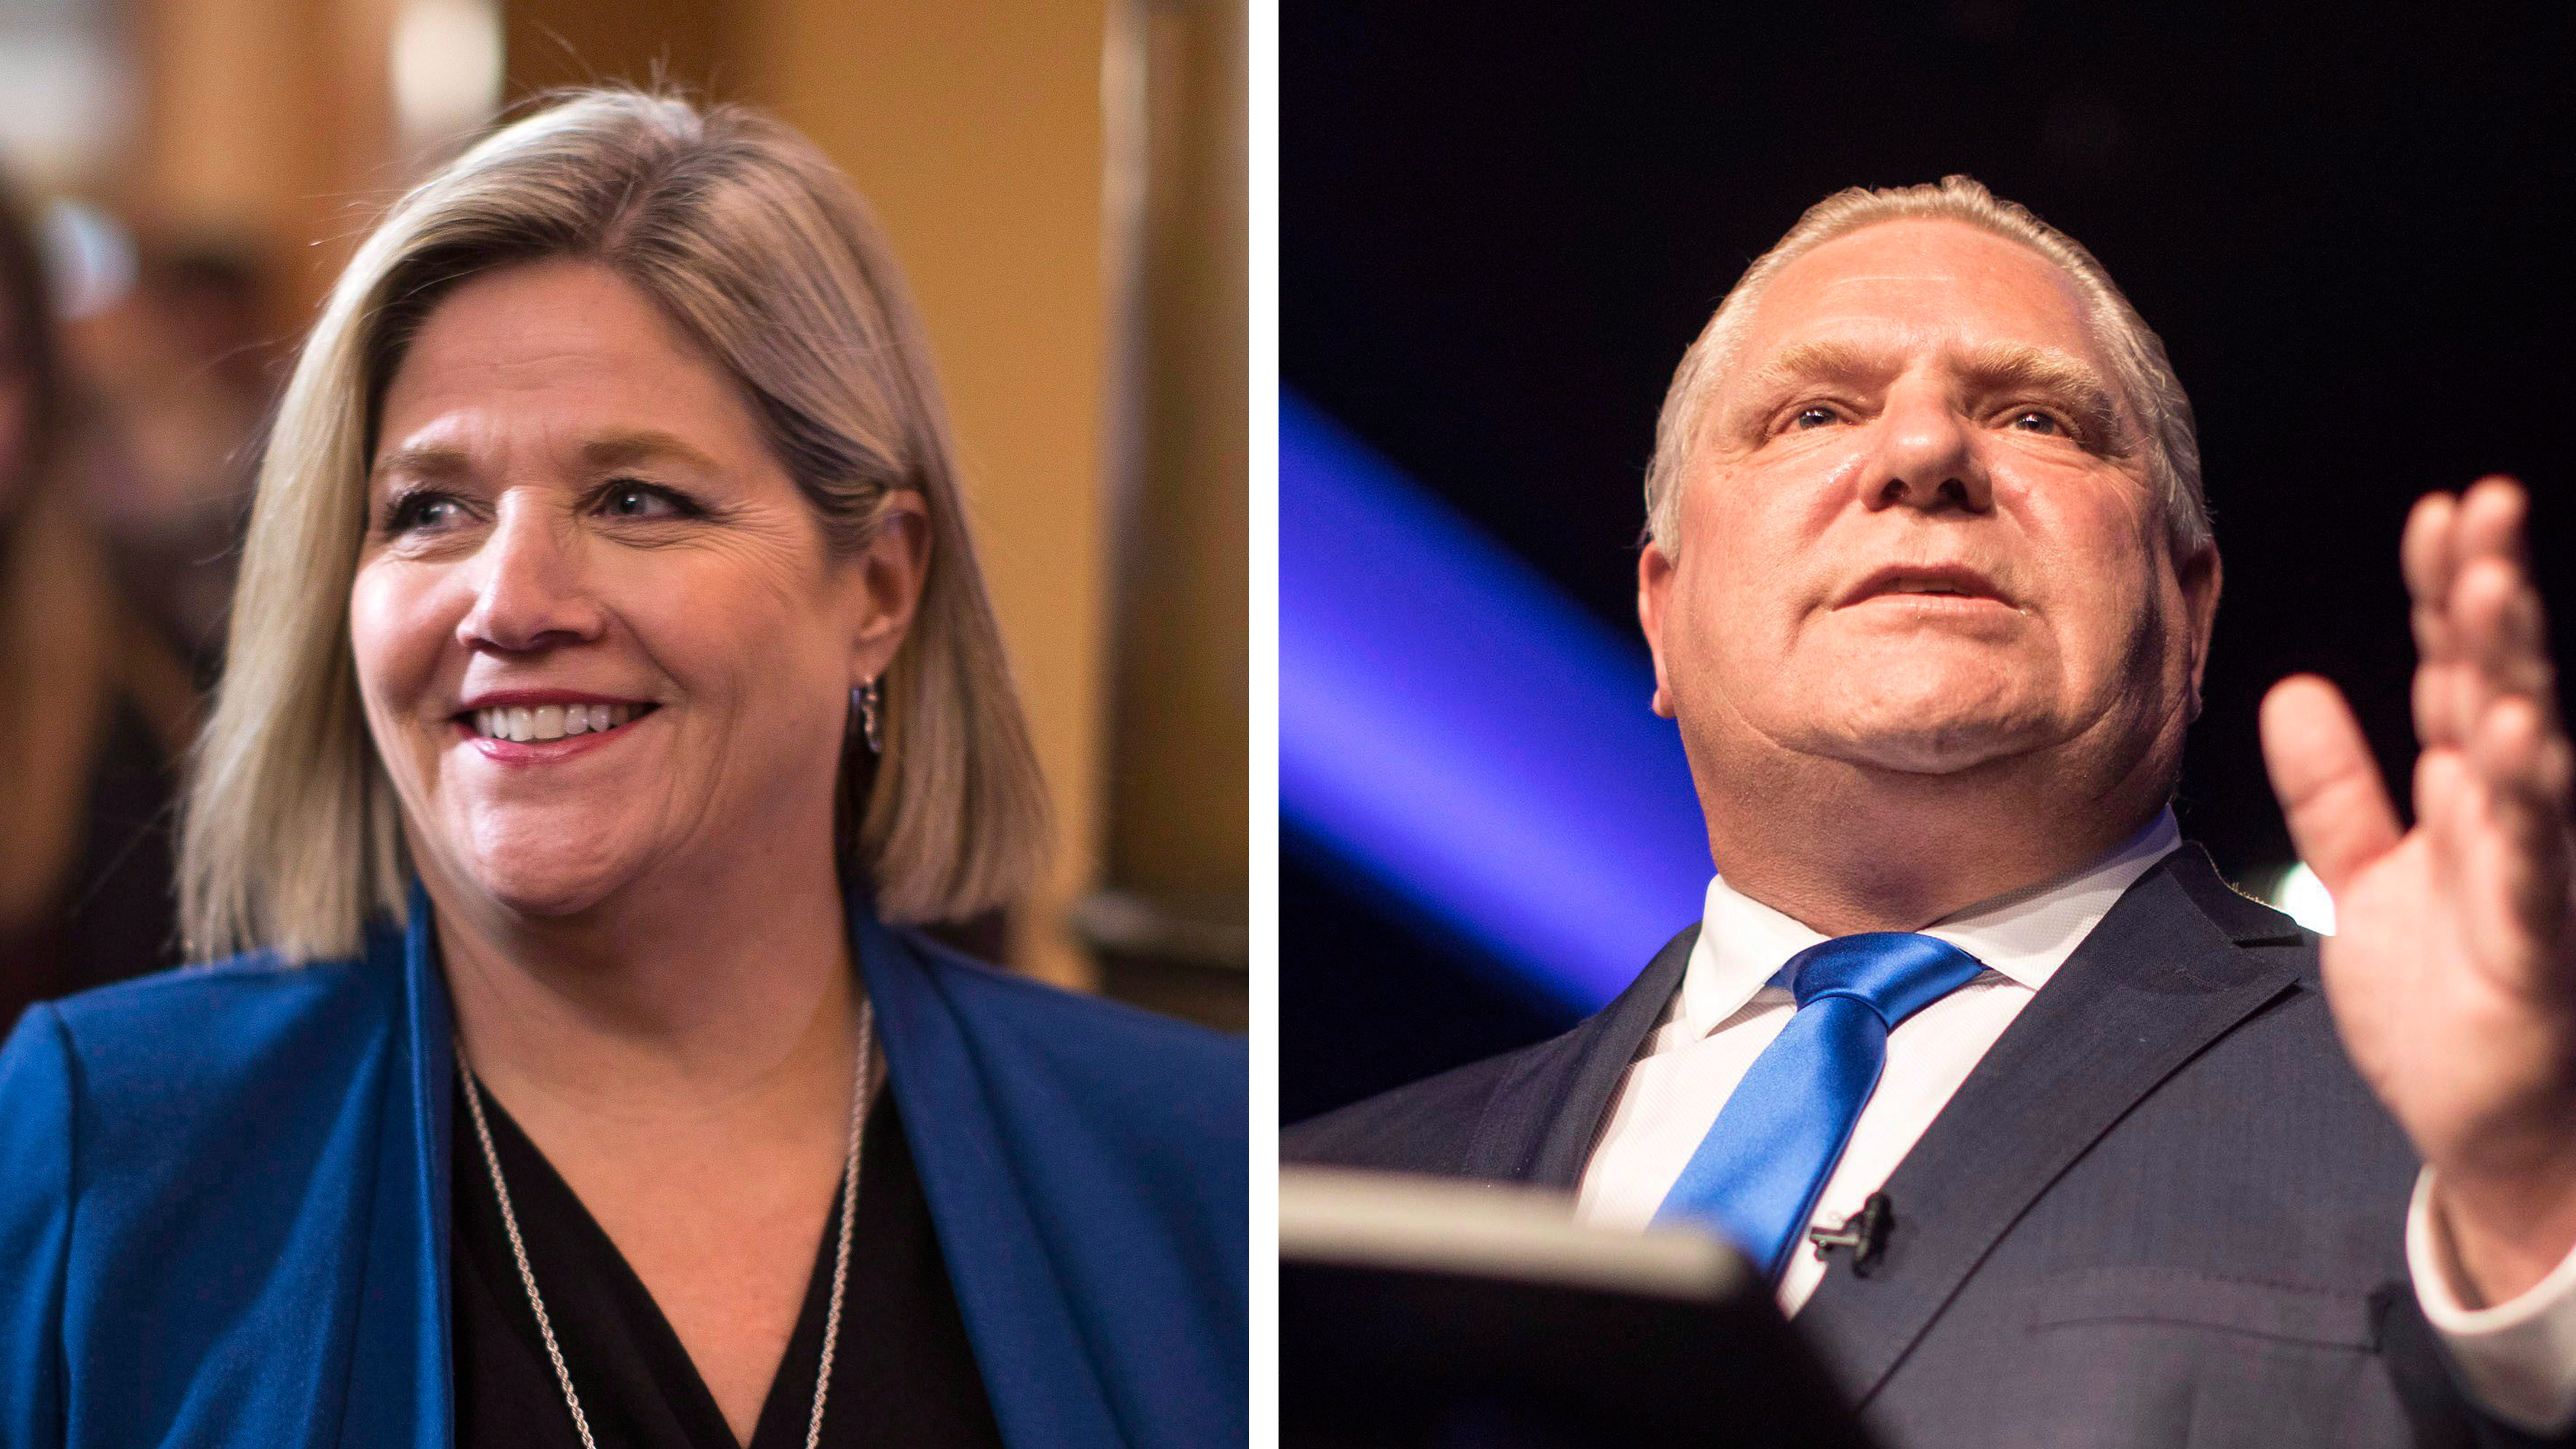 Premier Ford pledges paid sick leave program for workers, apologizes